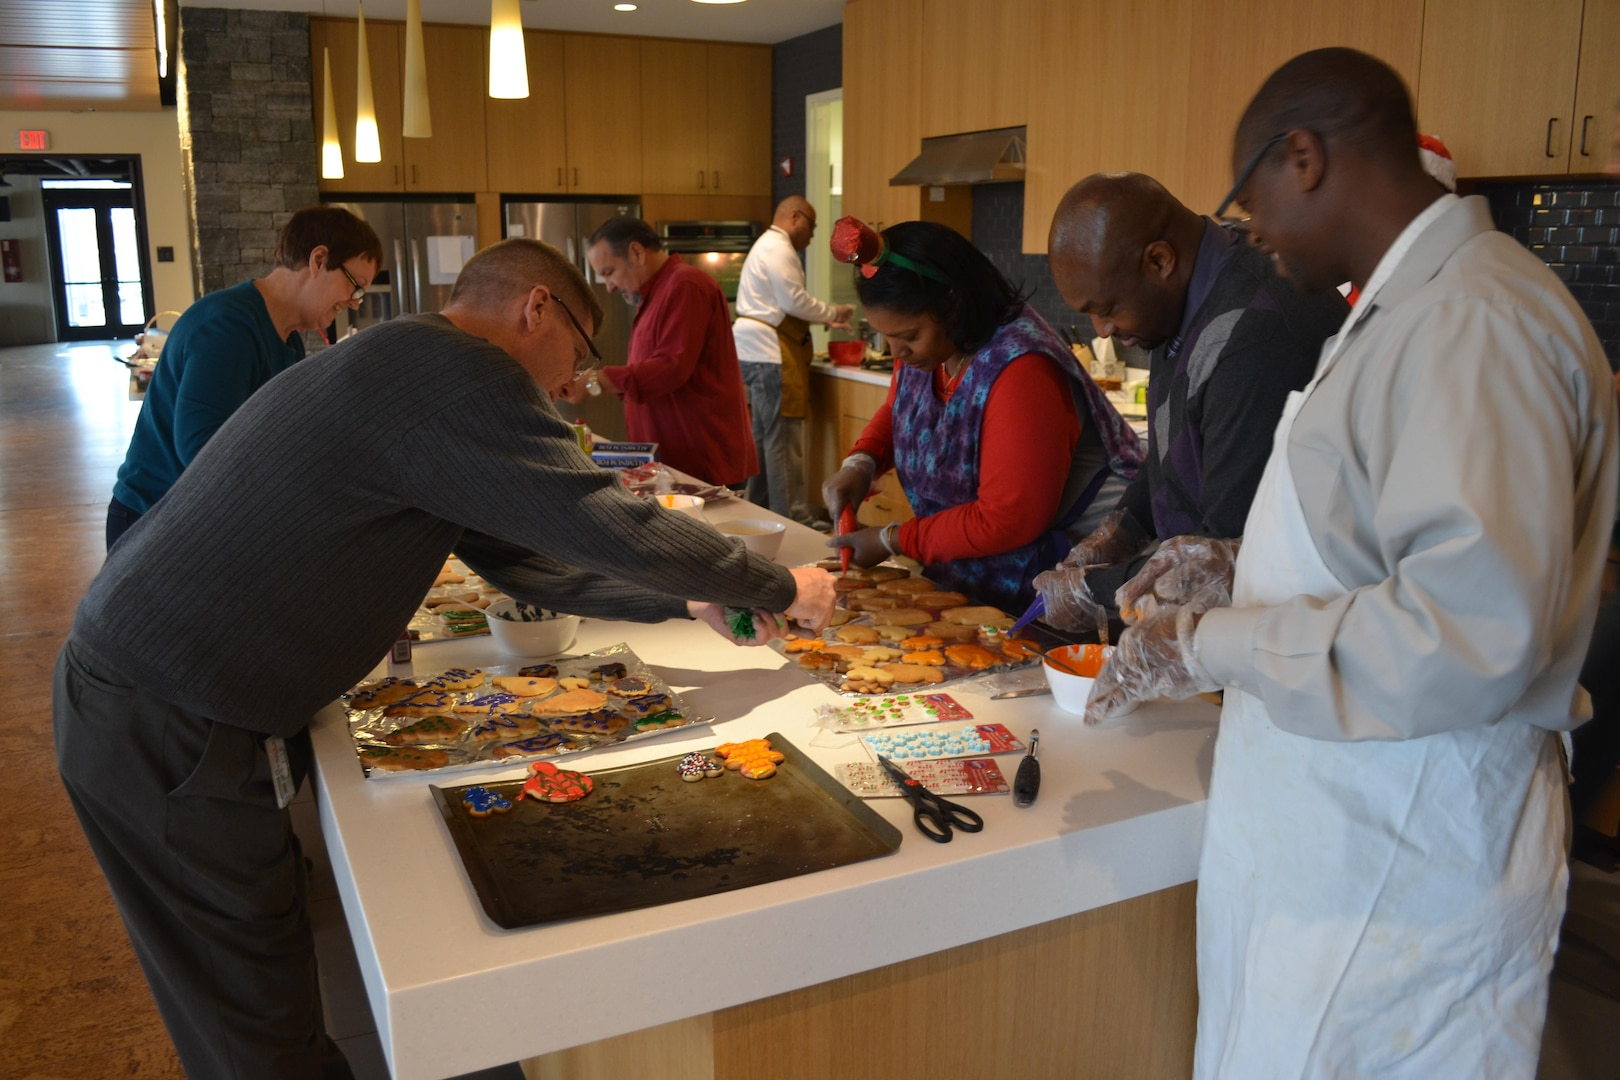 From left: Bill Farmer (foreground), Judy Durnin, Tony Acosta, Reggie Burks (at rear counter), Dorothy Russell, Derrick Washington and George Gray of DLA Logistics Operations' Disposal Policy and Compliance Division bake cookies at the USO Metro Warrior and Family Center, Fort Belvoir, Virginia, Dec. 21, 2016.